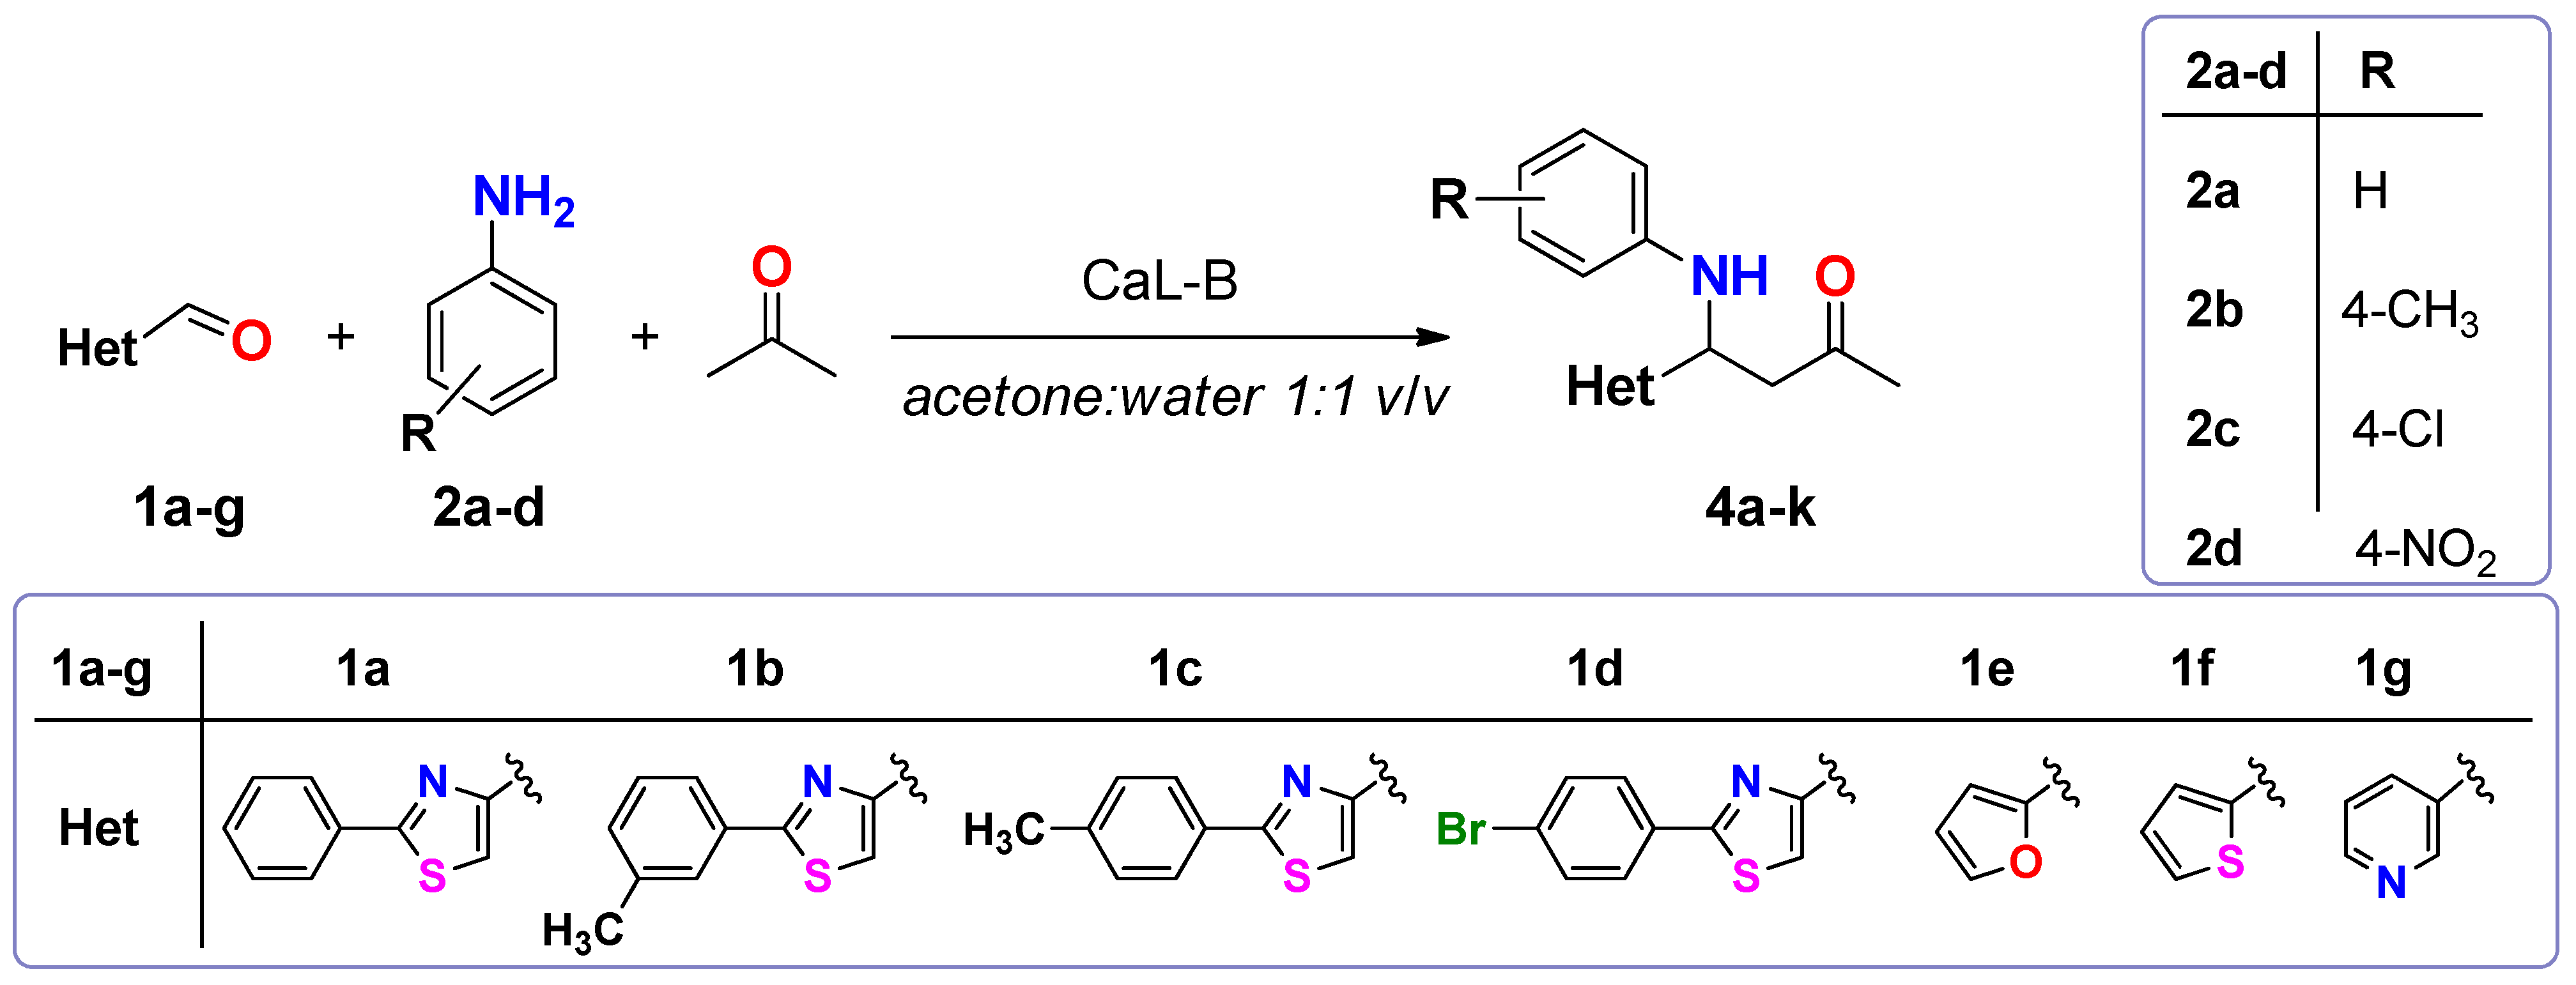 synthesis of formaldehyde Resorcinol (r)−formaldehyde (f) aerogels are pursued as precursors of carbon aerogels, which are electrically conducting they are usually prepared via a week-long base-catalyzed gelation process from an aqueous sol.